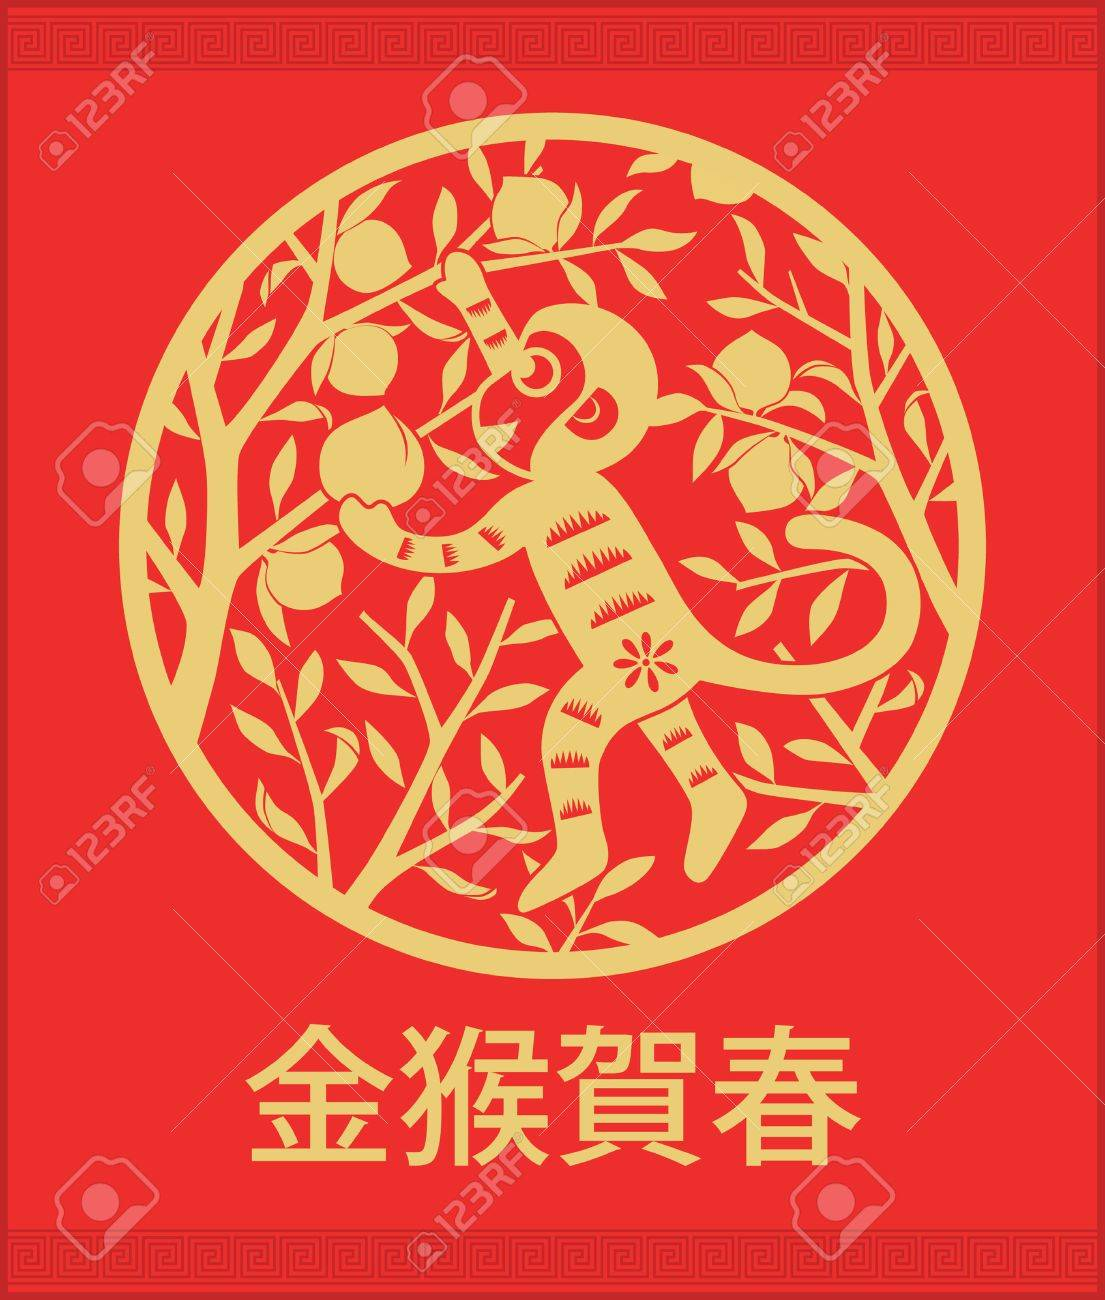 Chinese Papercutting Style Year Of Monkey Chinese New Year Lunar New